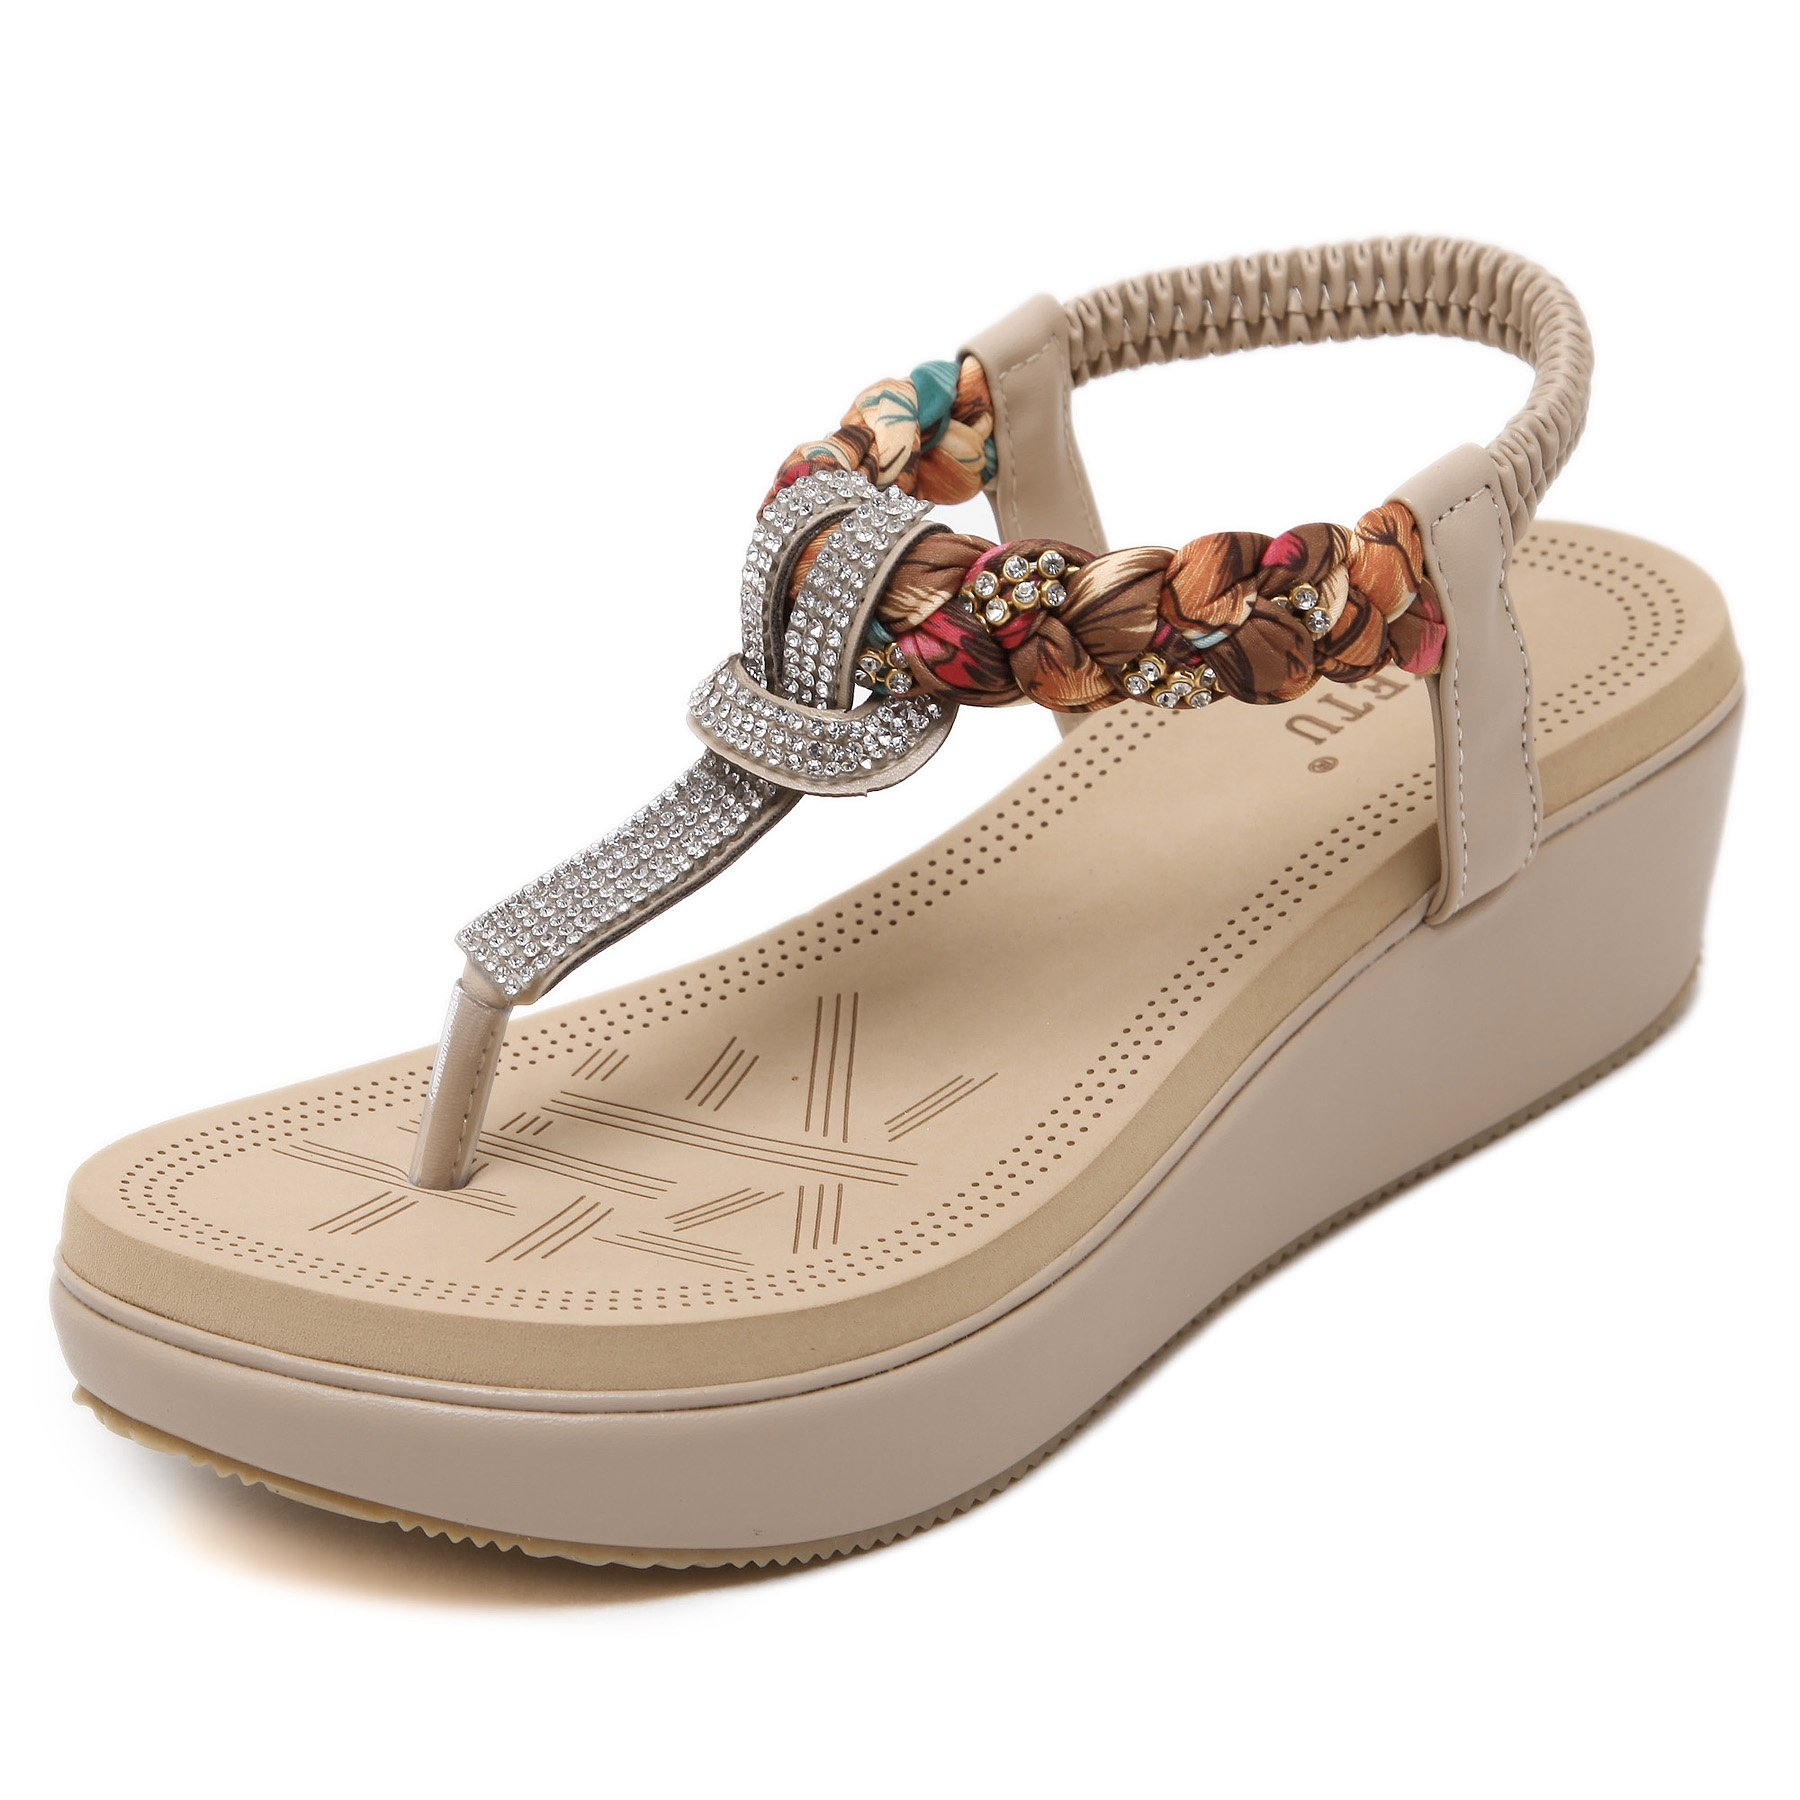 ab042350bb2f Meeshine Womens Wedge Sandals Thong Platform Beaded Slingback Bohemia  Summer Sandal